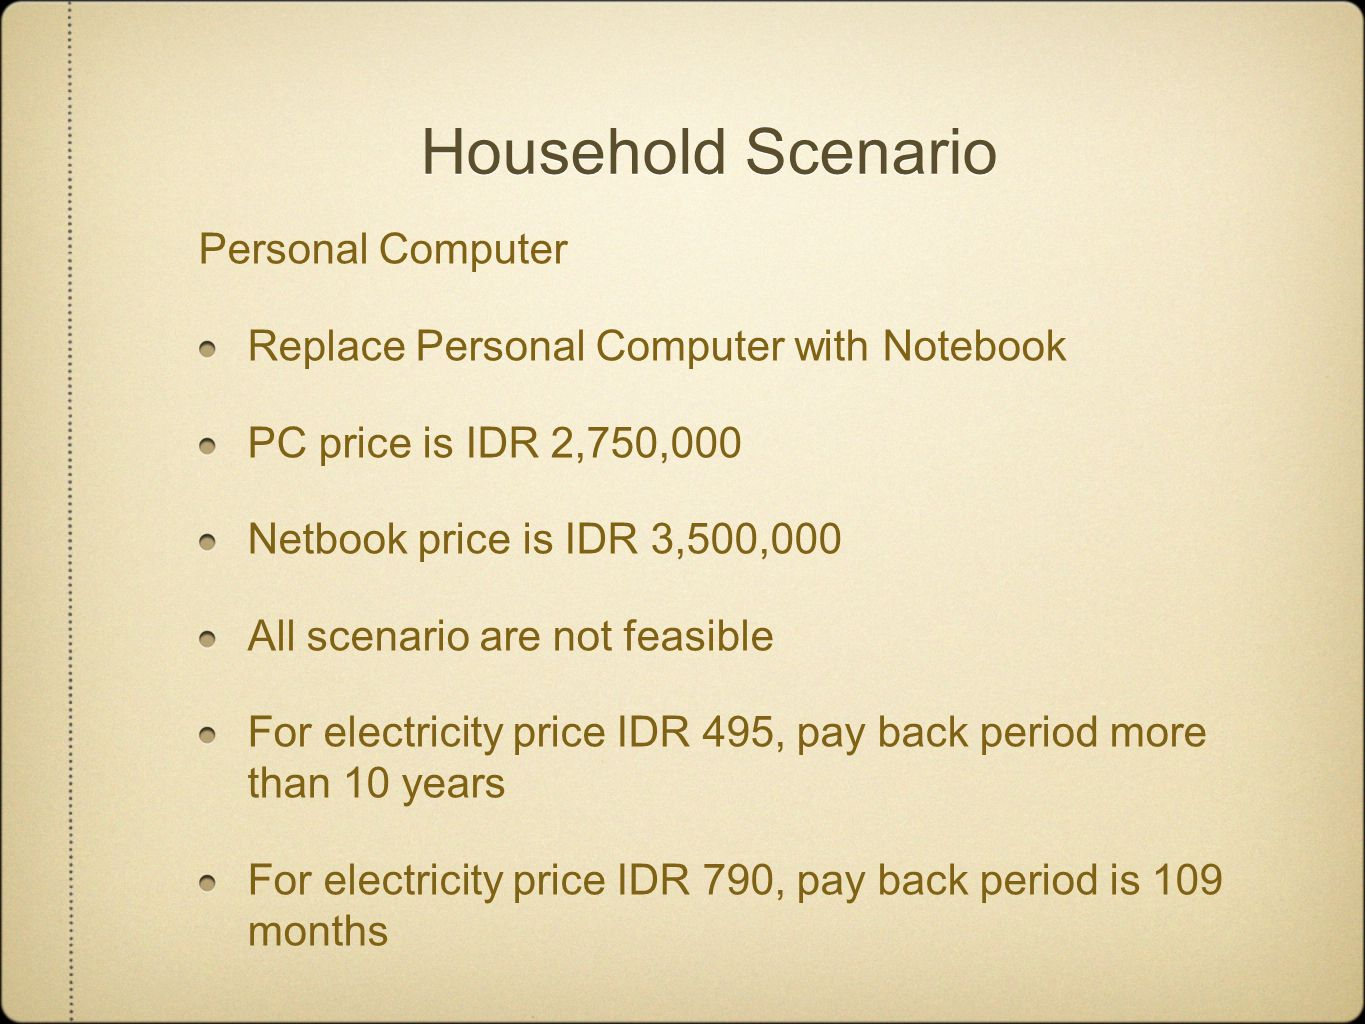 Household Scenario Personal Computer Replace Personal Computer with Notebook PC price is IDR 2,750,000 Netbook price is IDR 3,500,000 All scenario are not feasible For electricity price IDR 495, pay back period more than 10 years For electricity price IDR 790, pay back period is 109 months